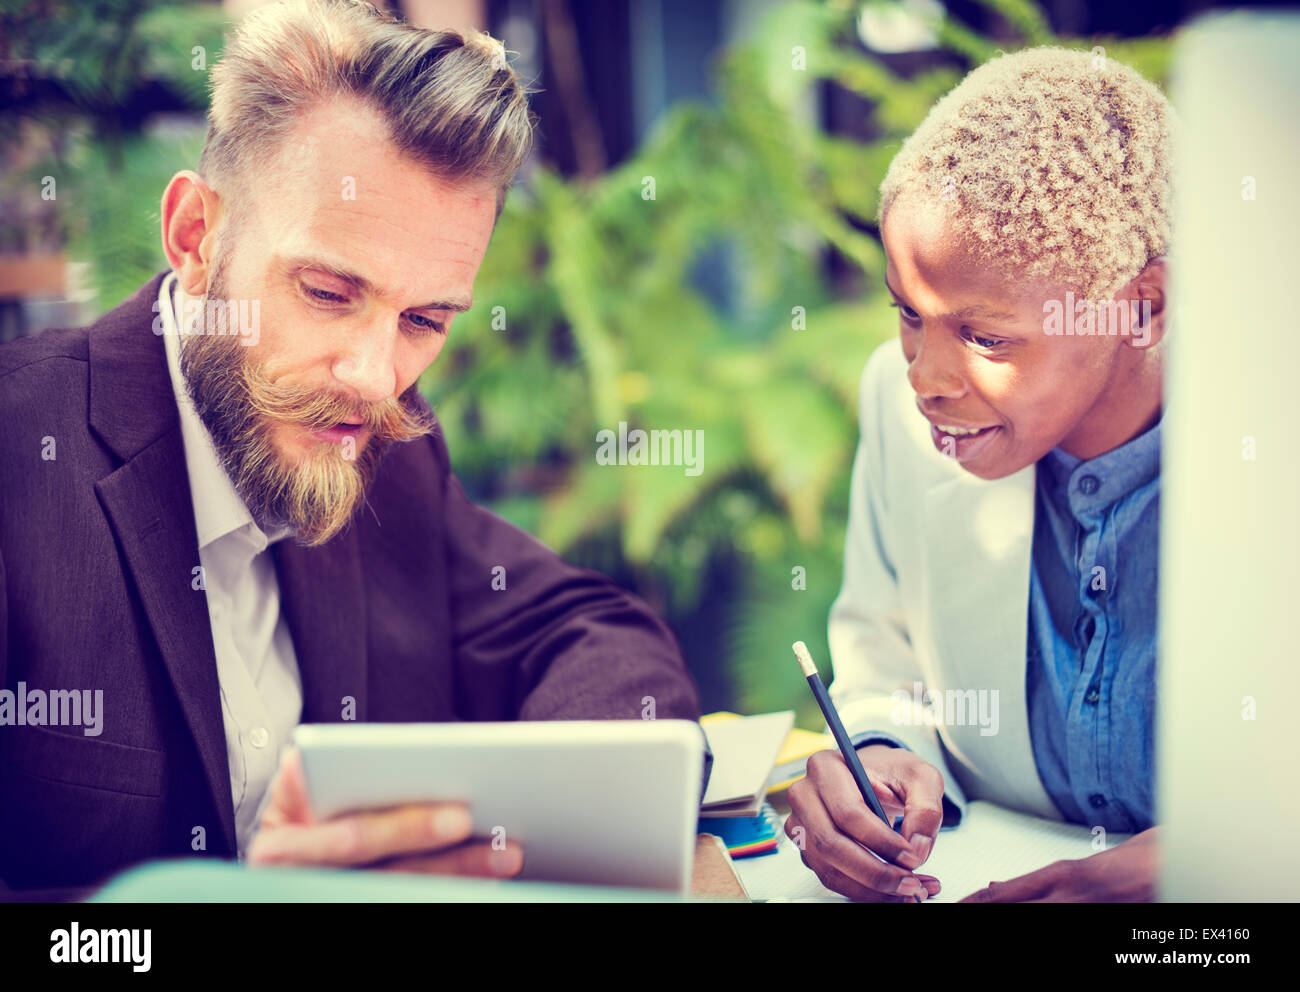 Manager Secretary Collaboration Meeting Discussion Concept - Stock Image